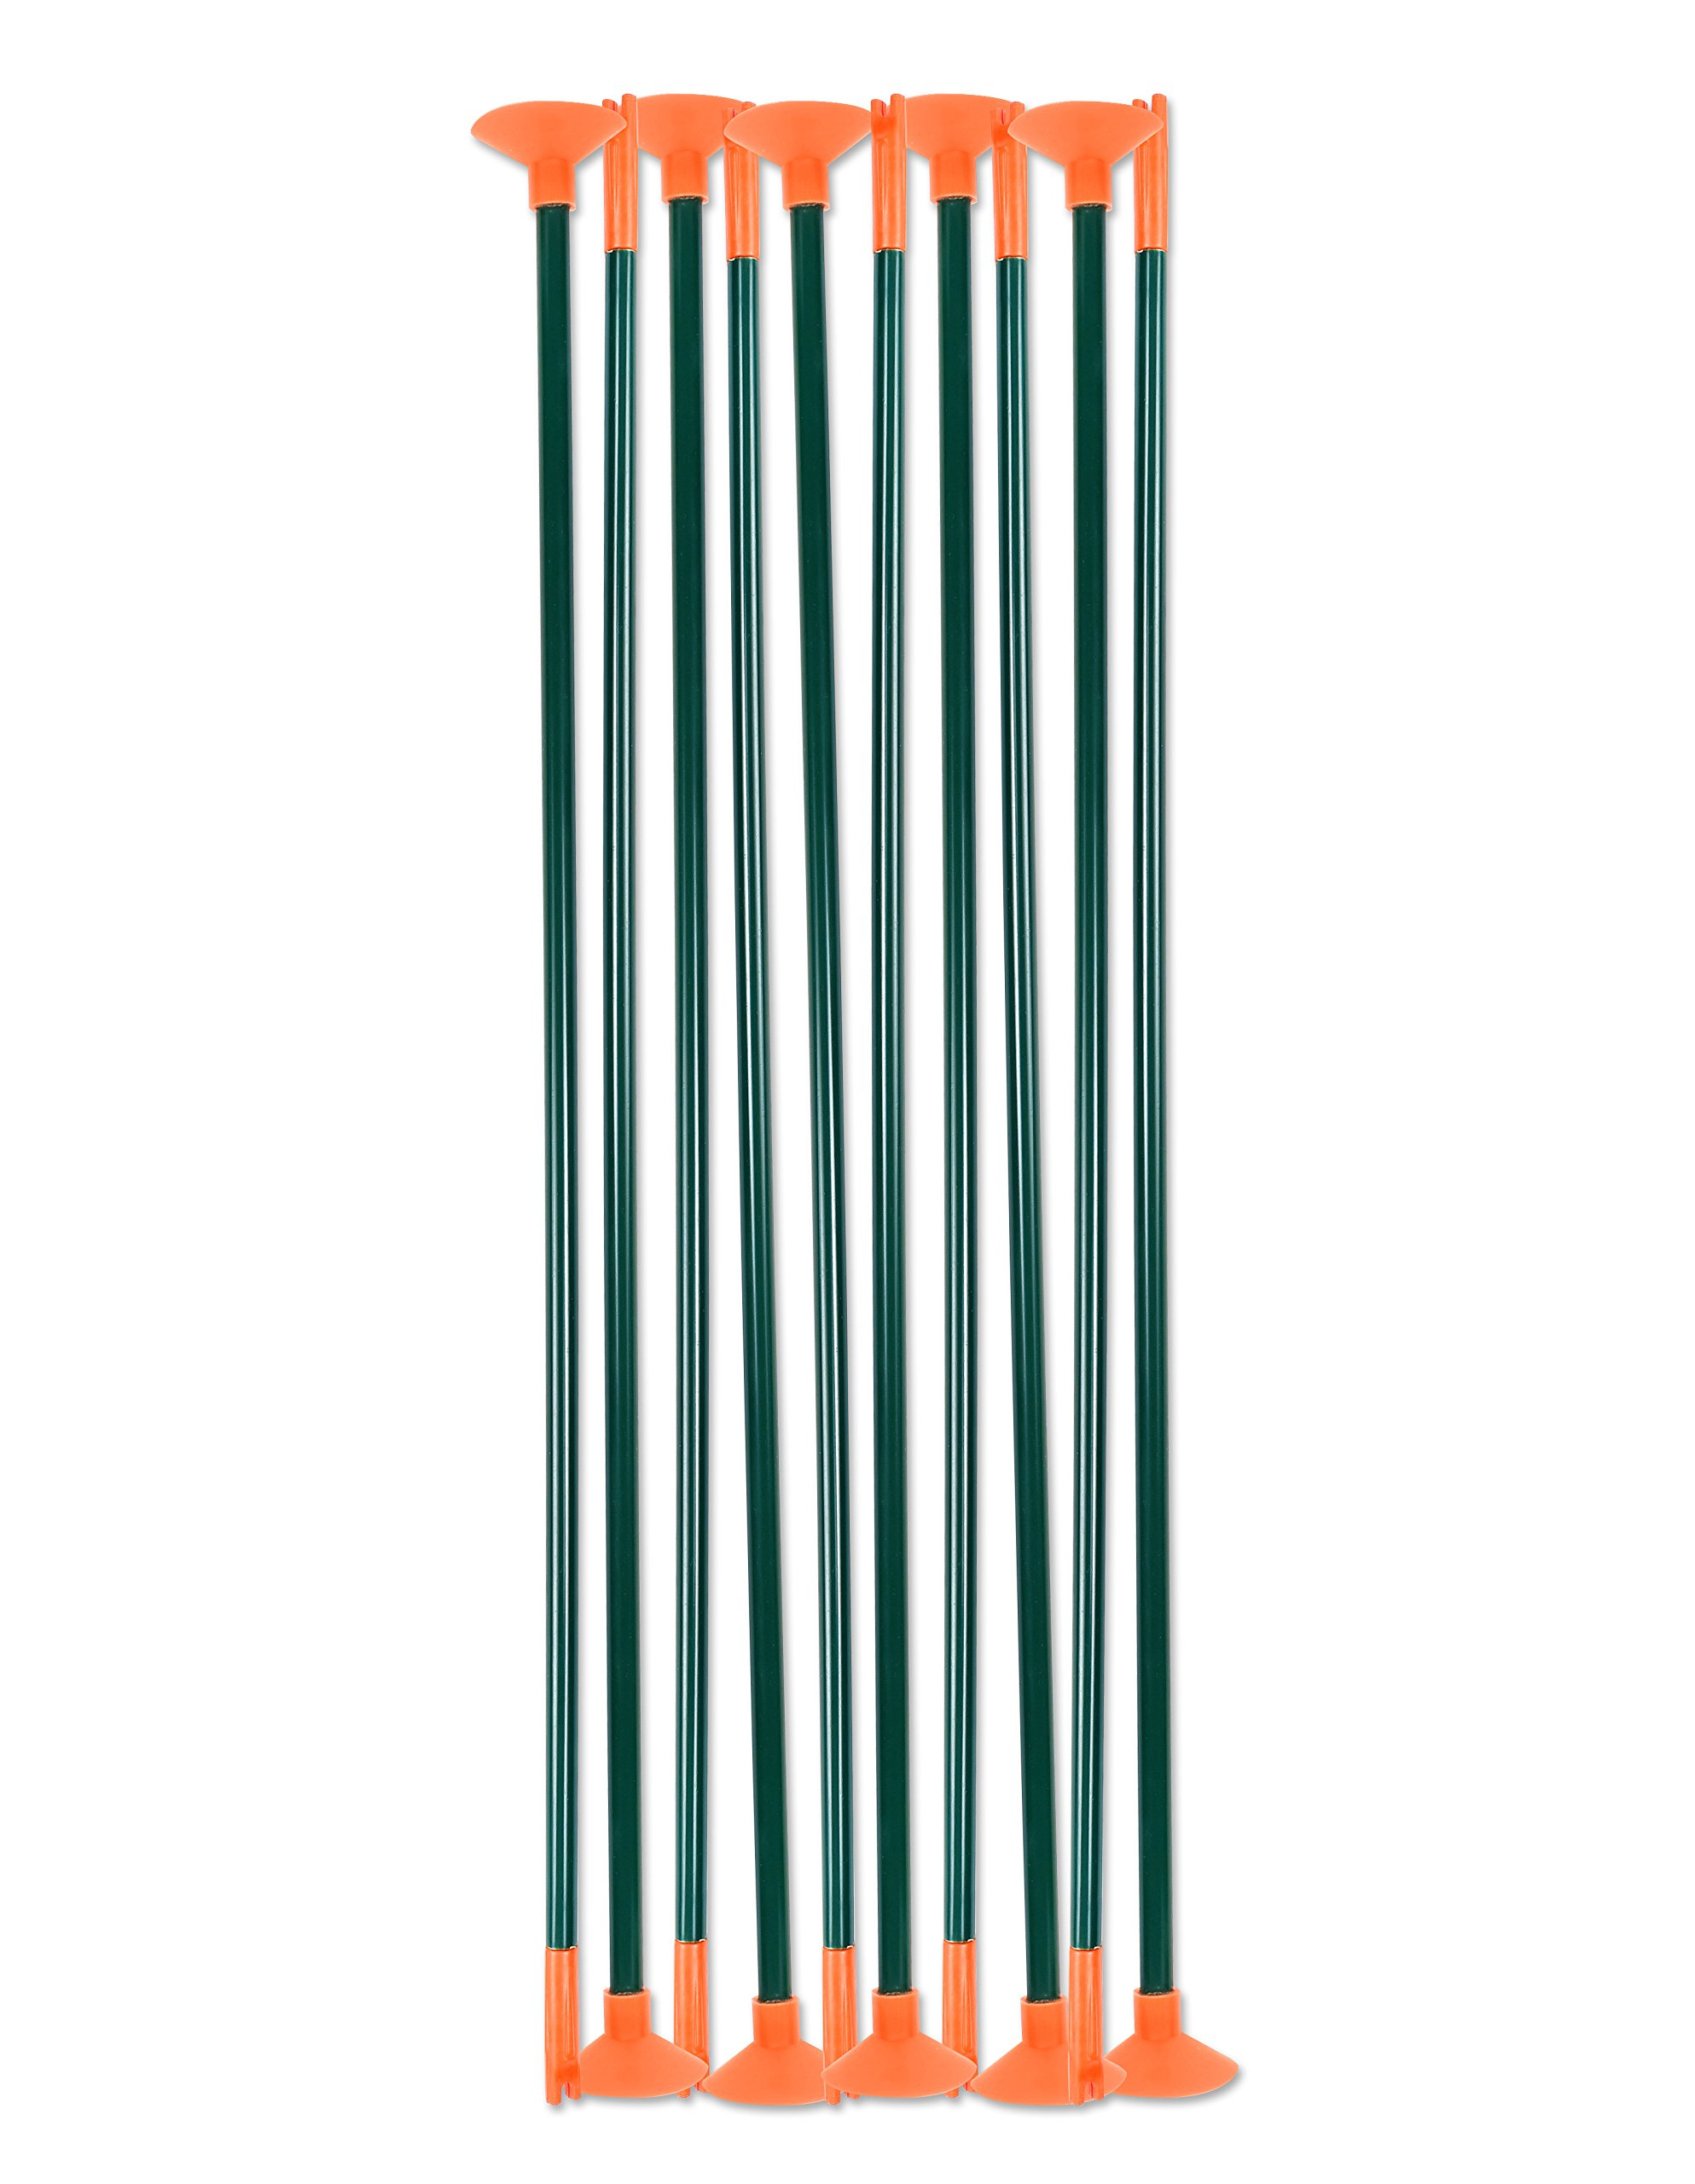 Maxx Action Hunting Series 10-pack Replacement Arrows